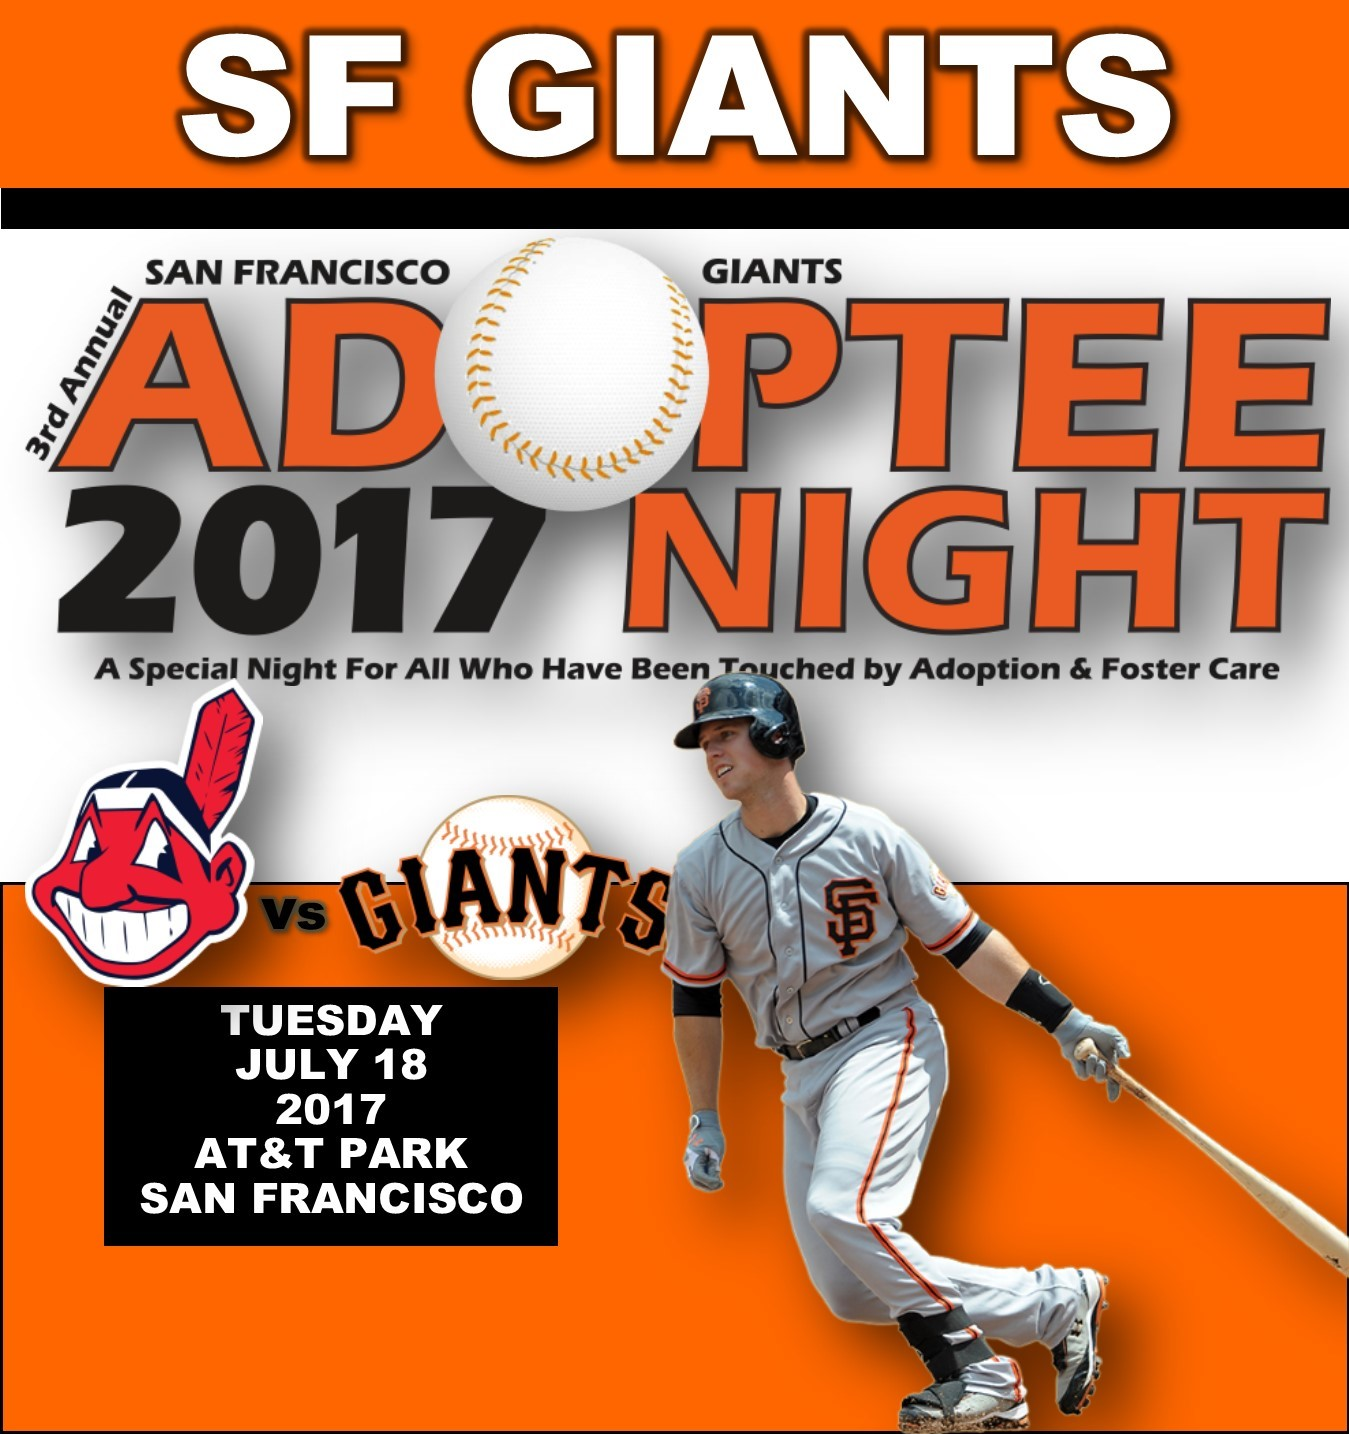 3RD ANNUAL SF GIANTS ADOPTEE NIGHT 2017 Photo